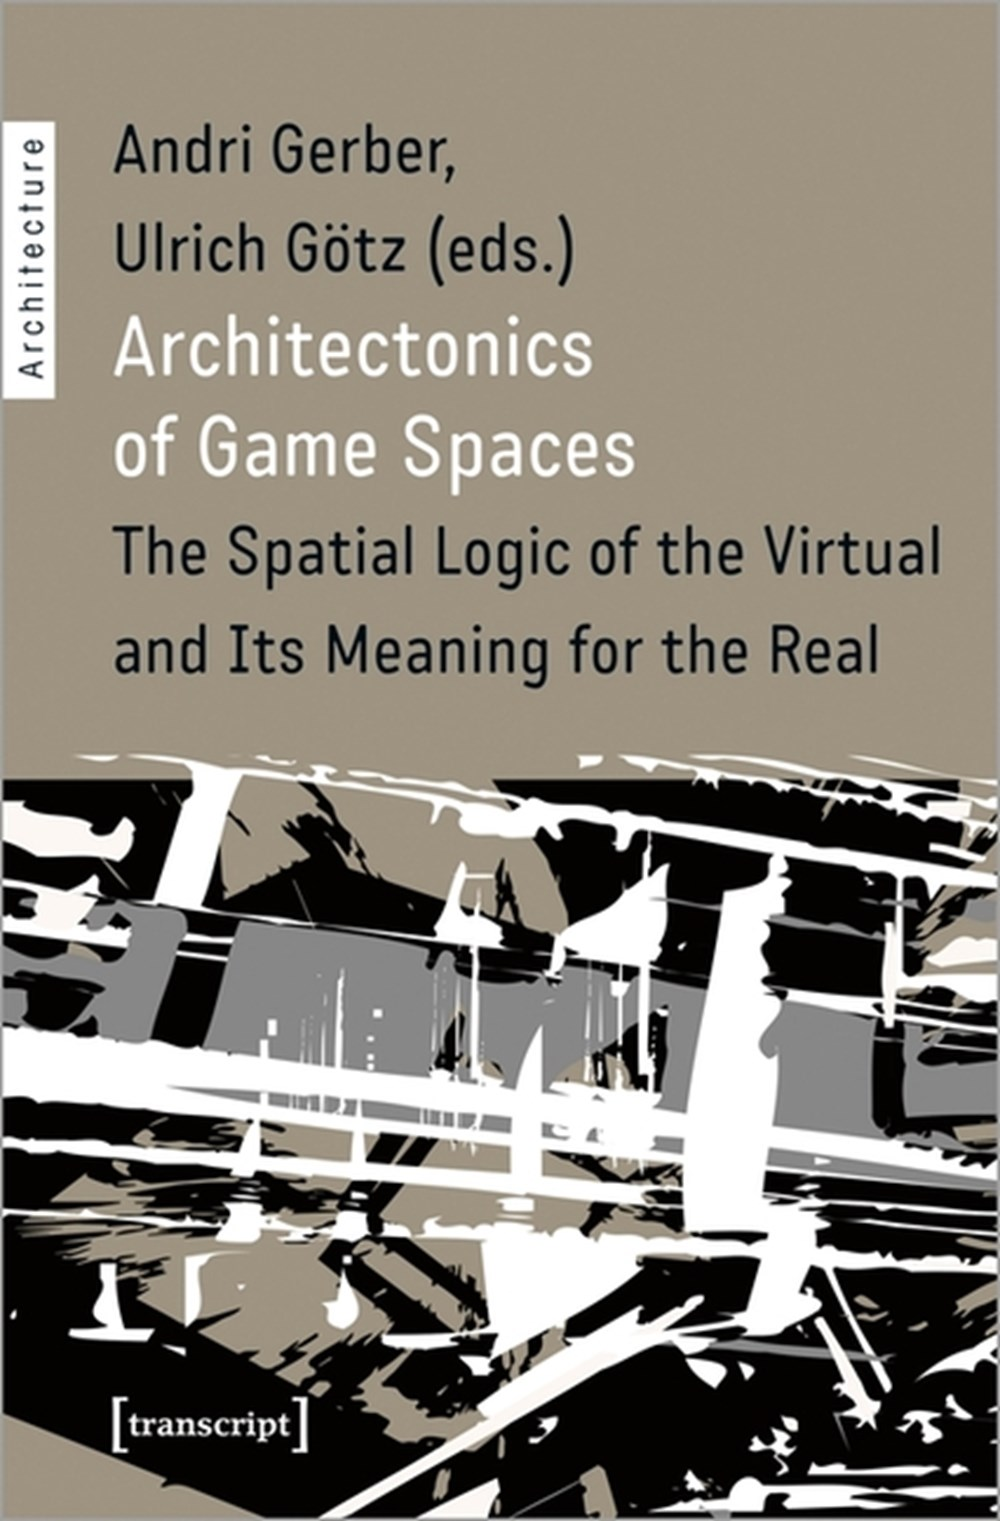 Architectonics of Game Spaces The Spatial Logic of the Virtual and Its Meaning for the Real